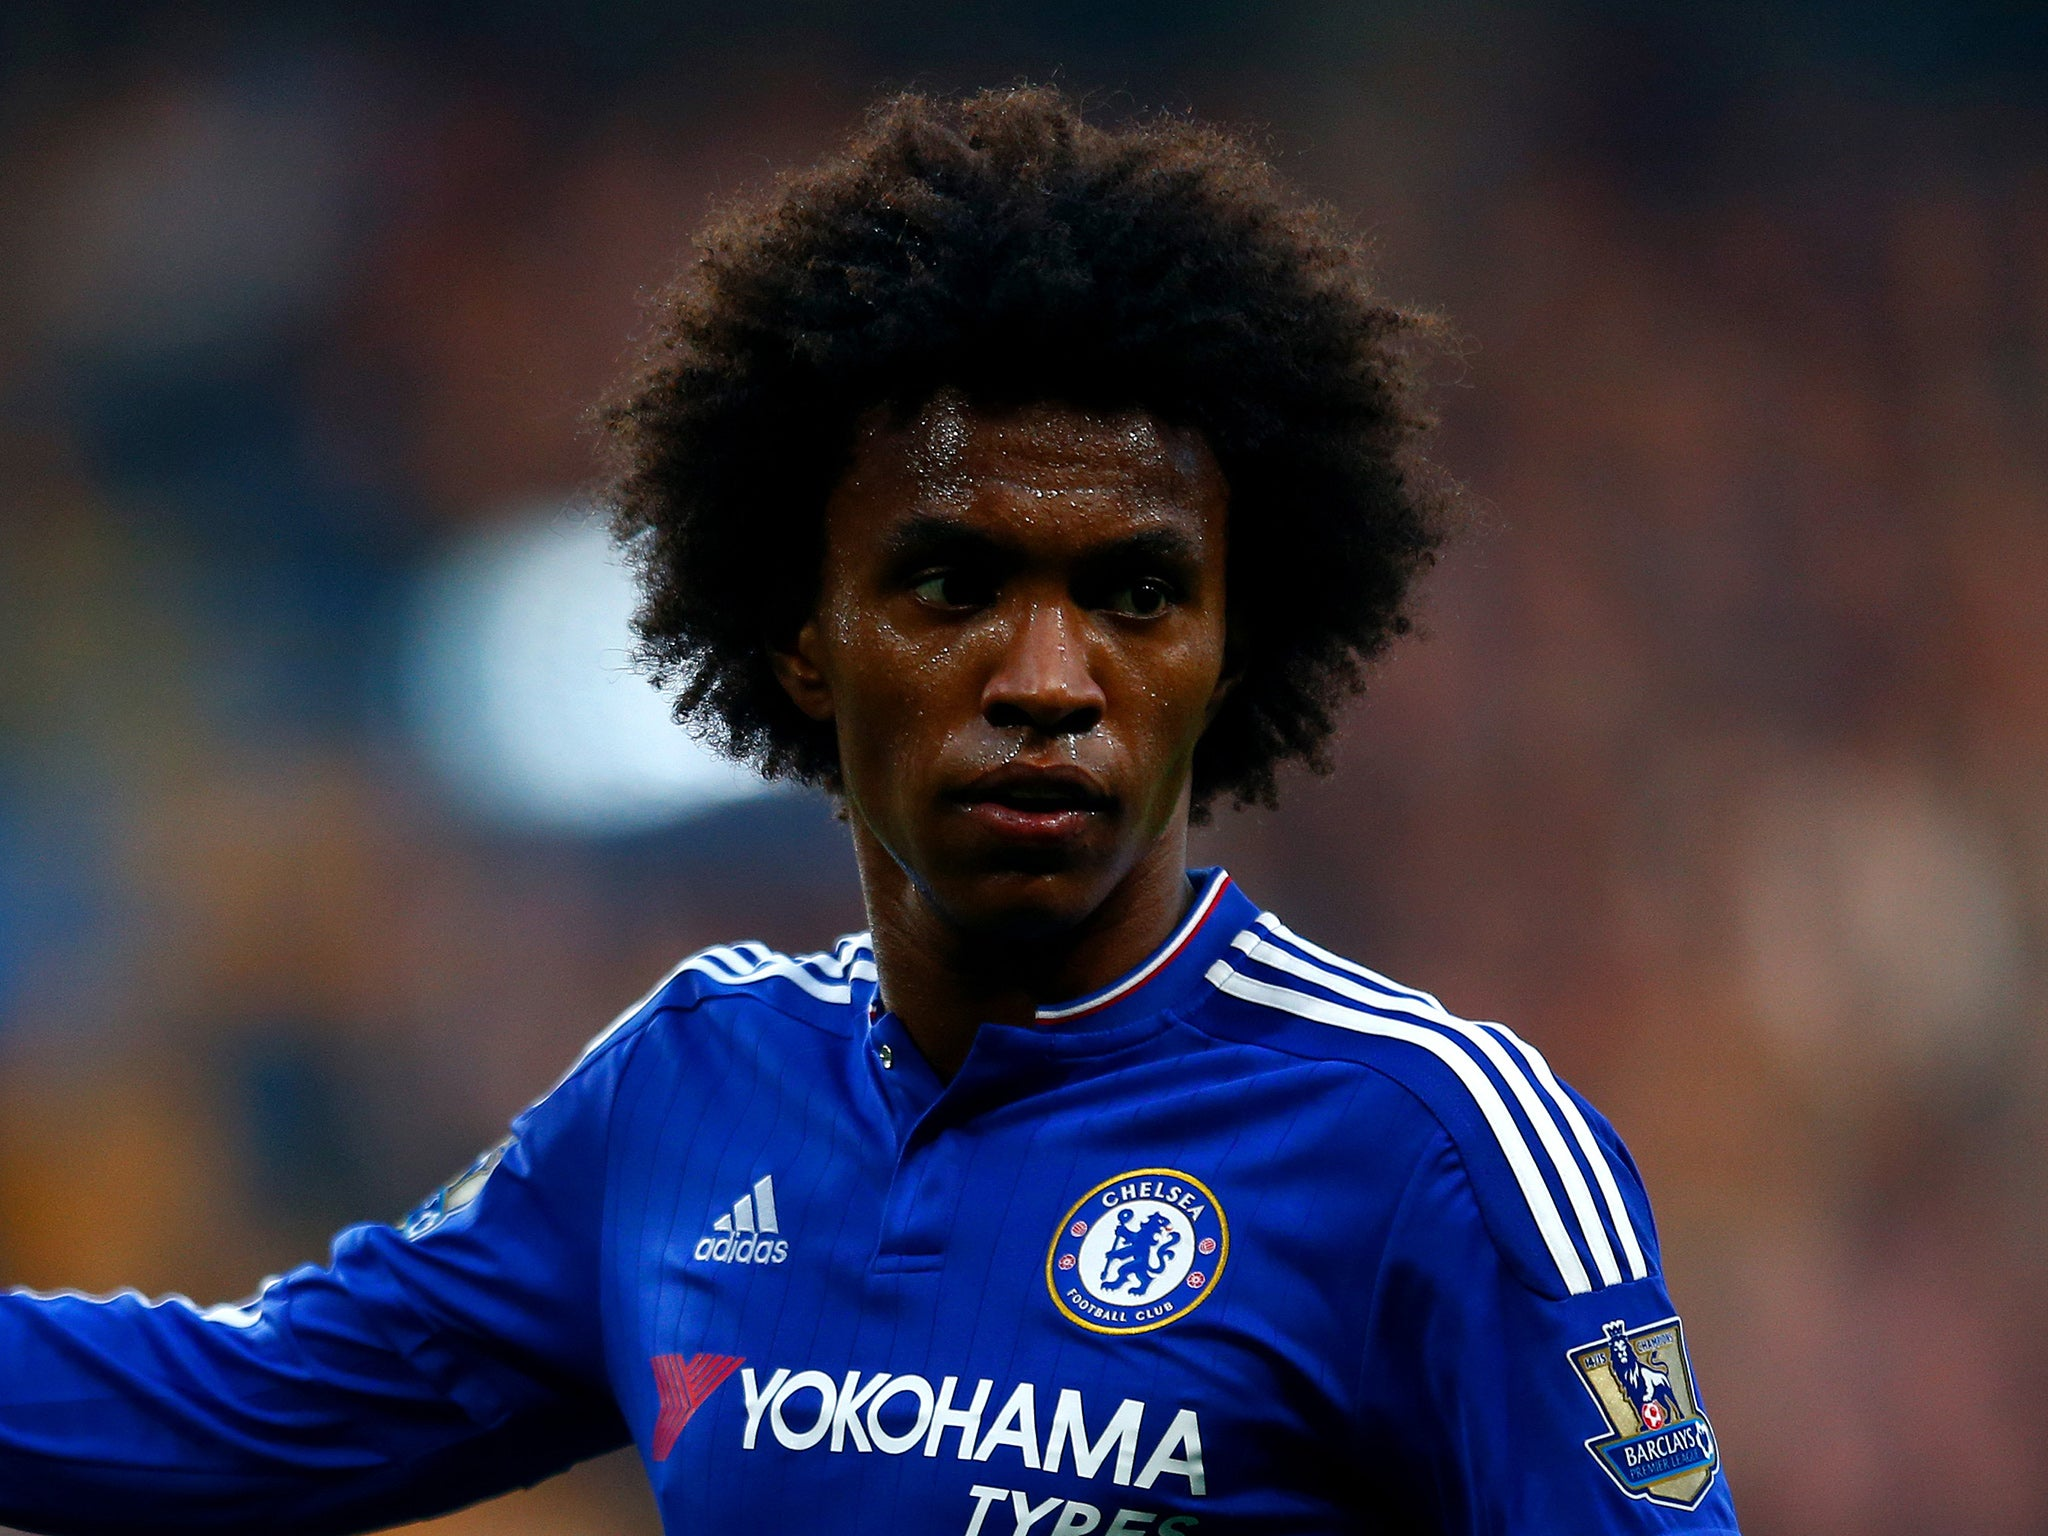 Chelsea injury news: Willian to be assessed ahead of trip to Watford